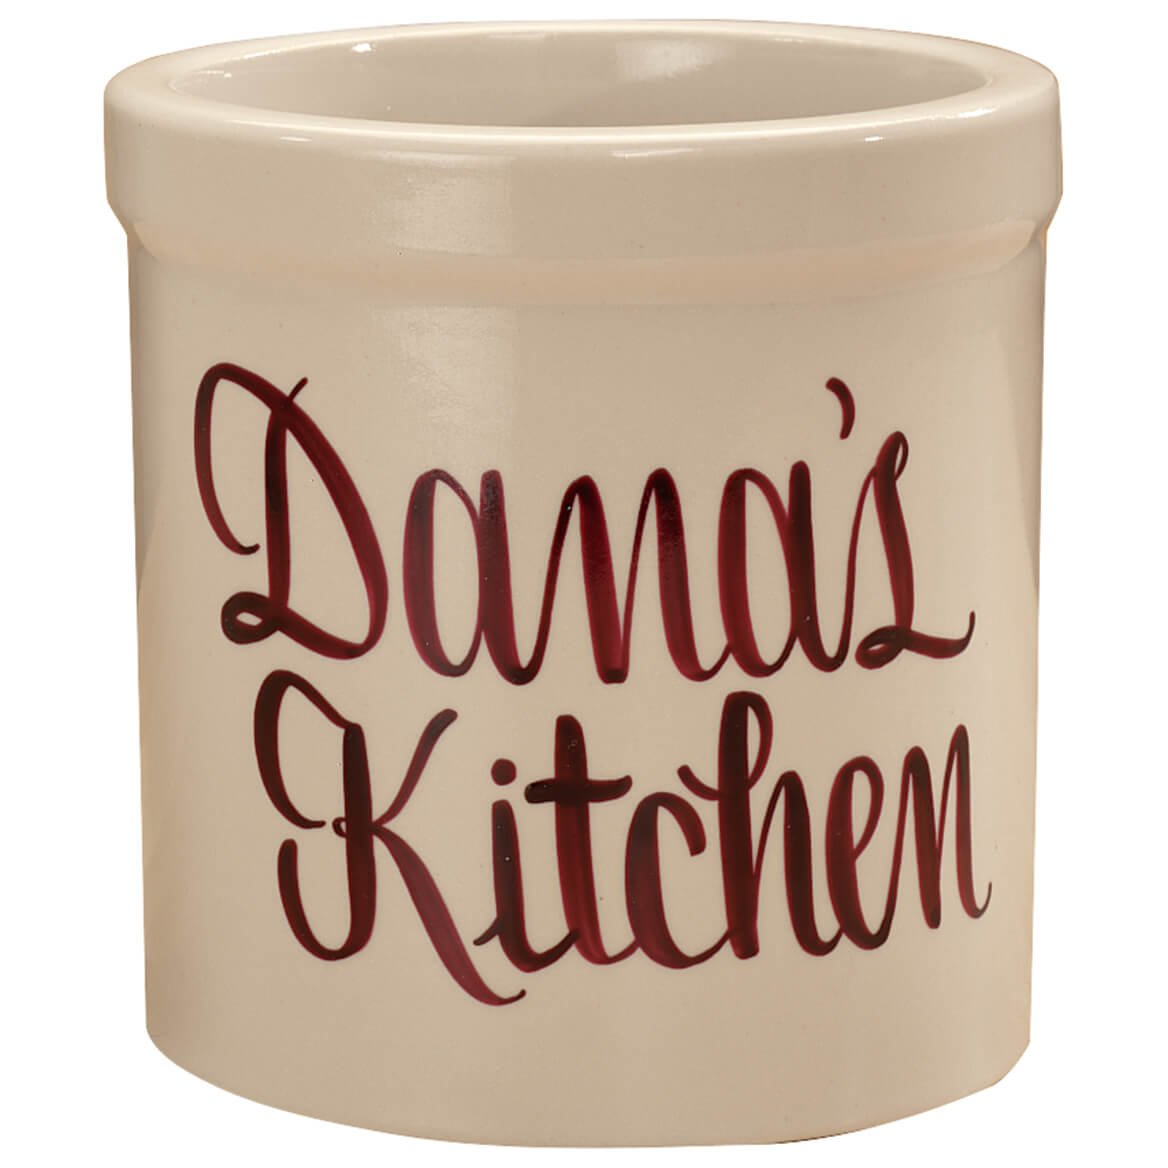 Personalized Stoneware Burgundy Crock - 1 Qt